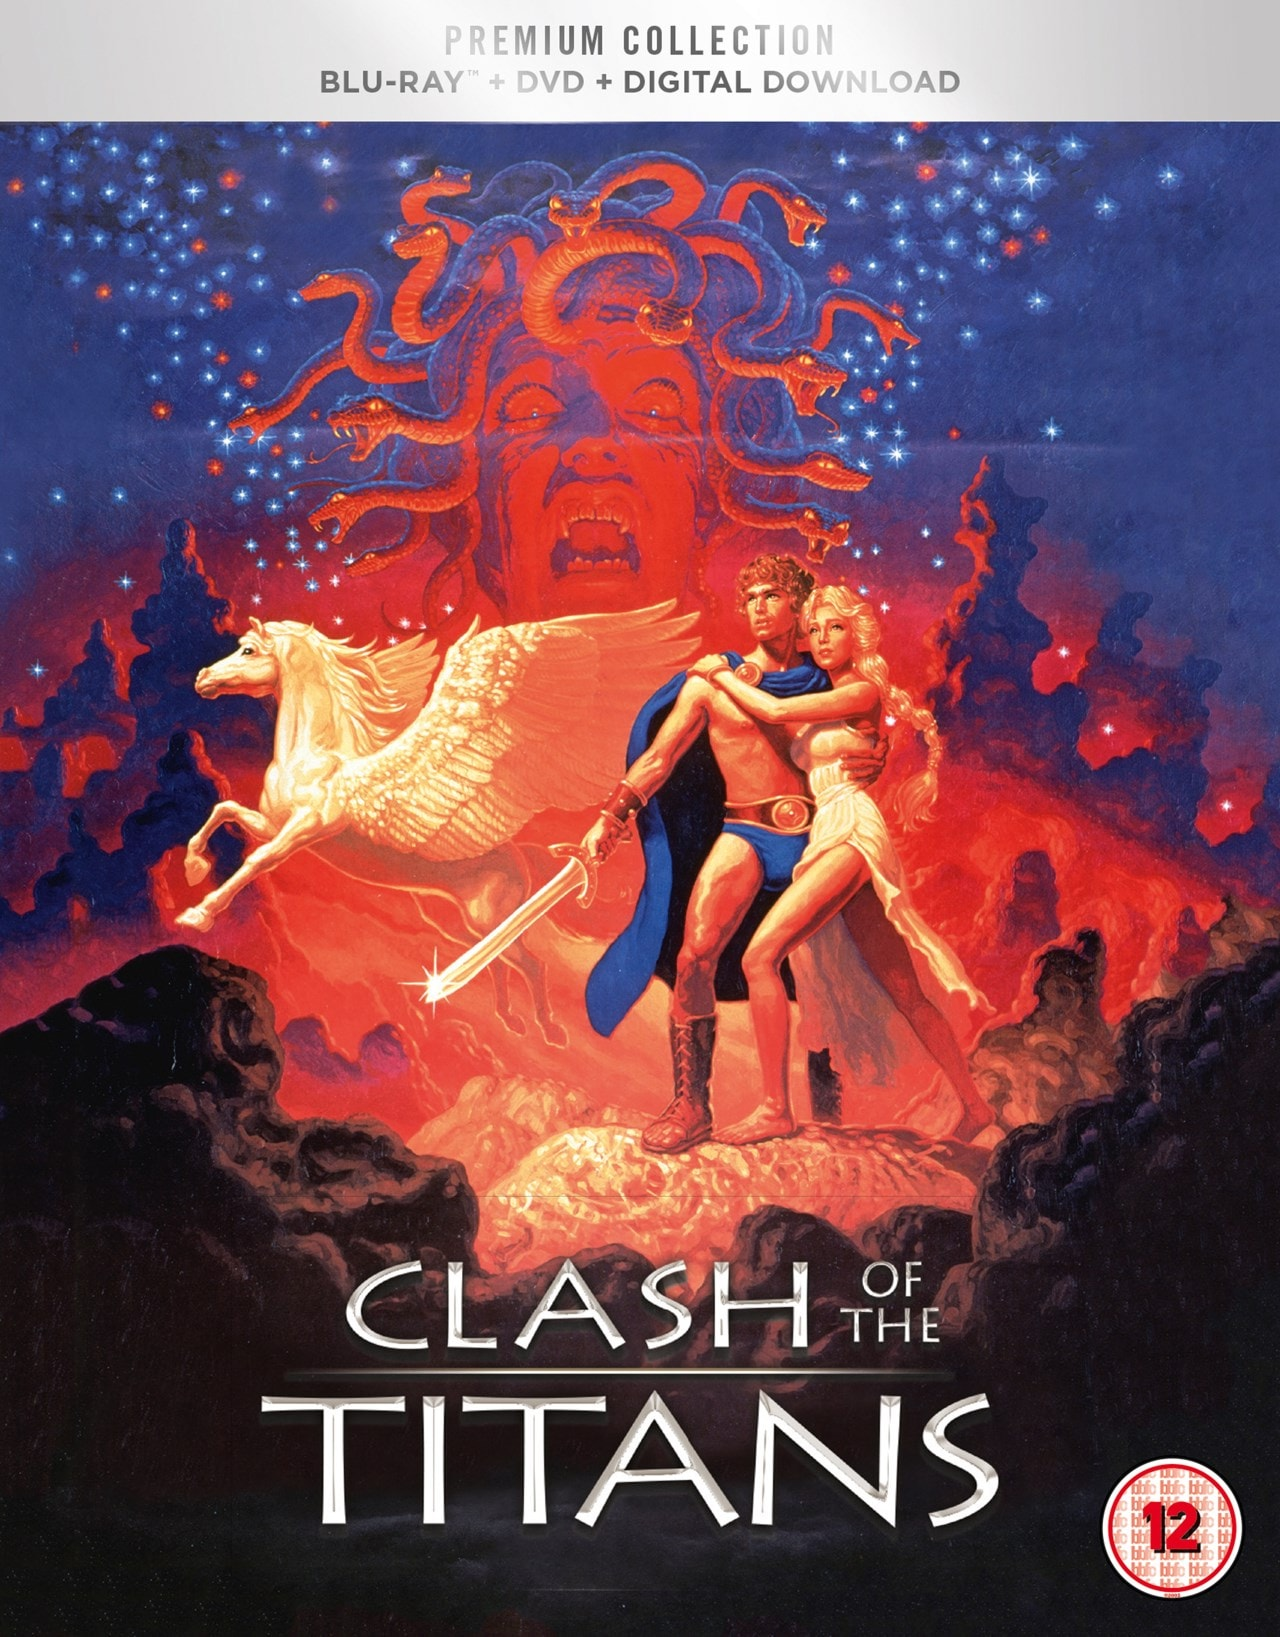 Clash of the Titans (hmv Exclusive) - The Premium Collection - 1